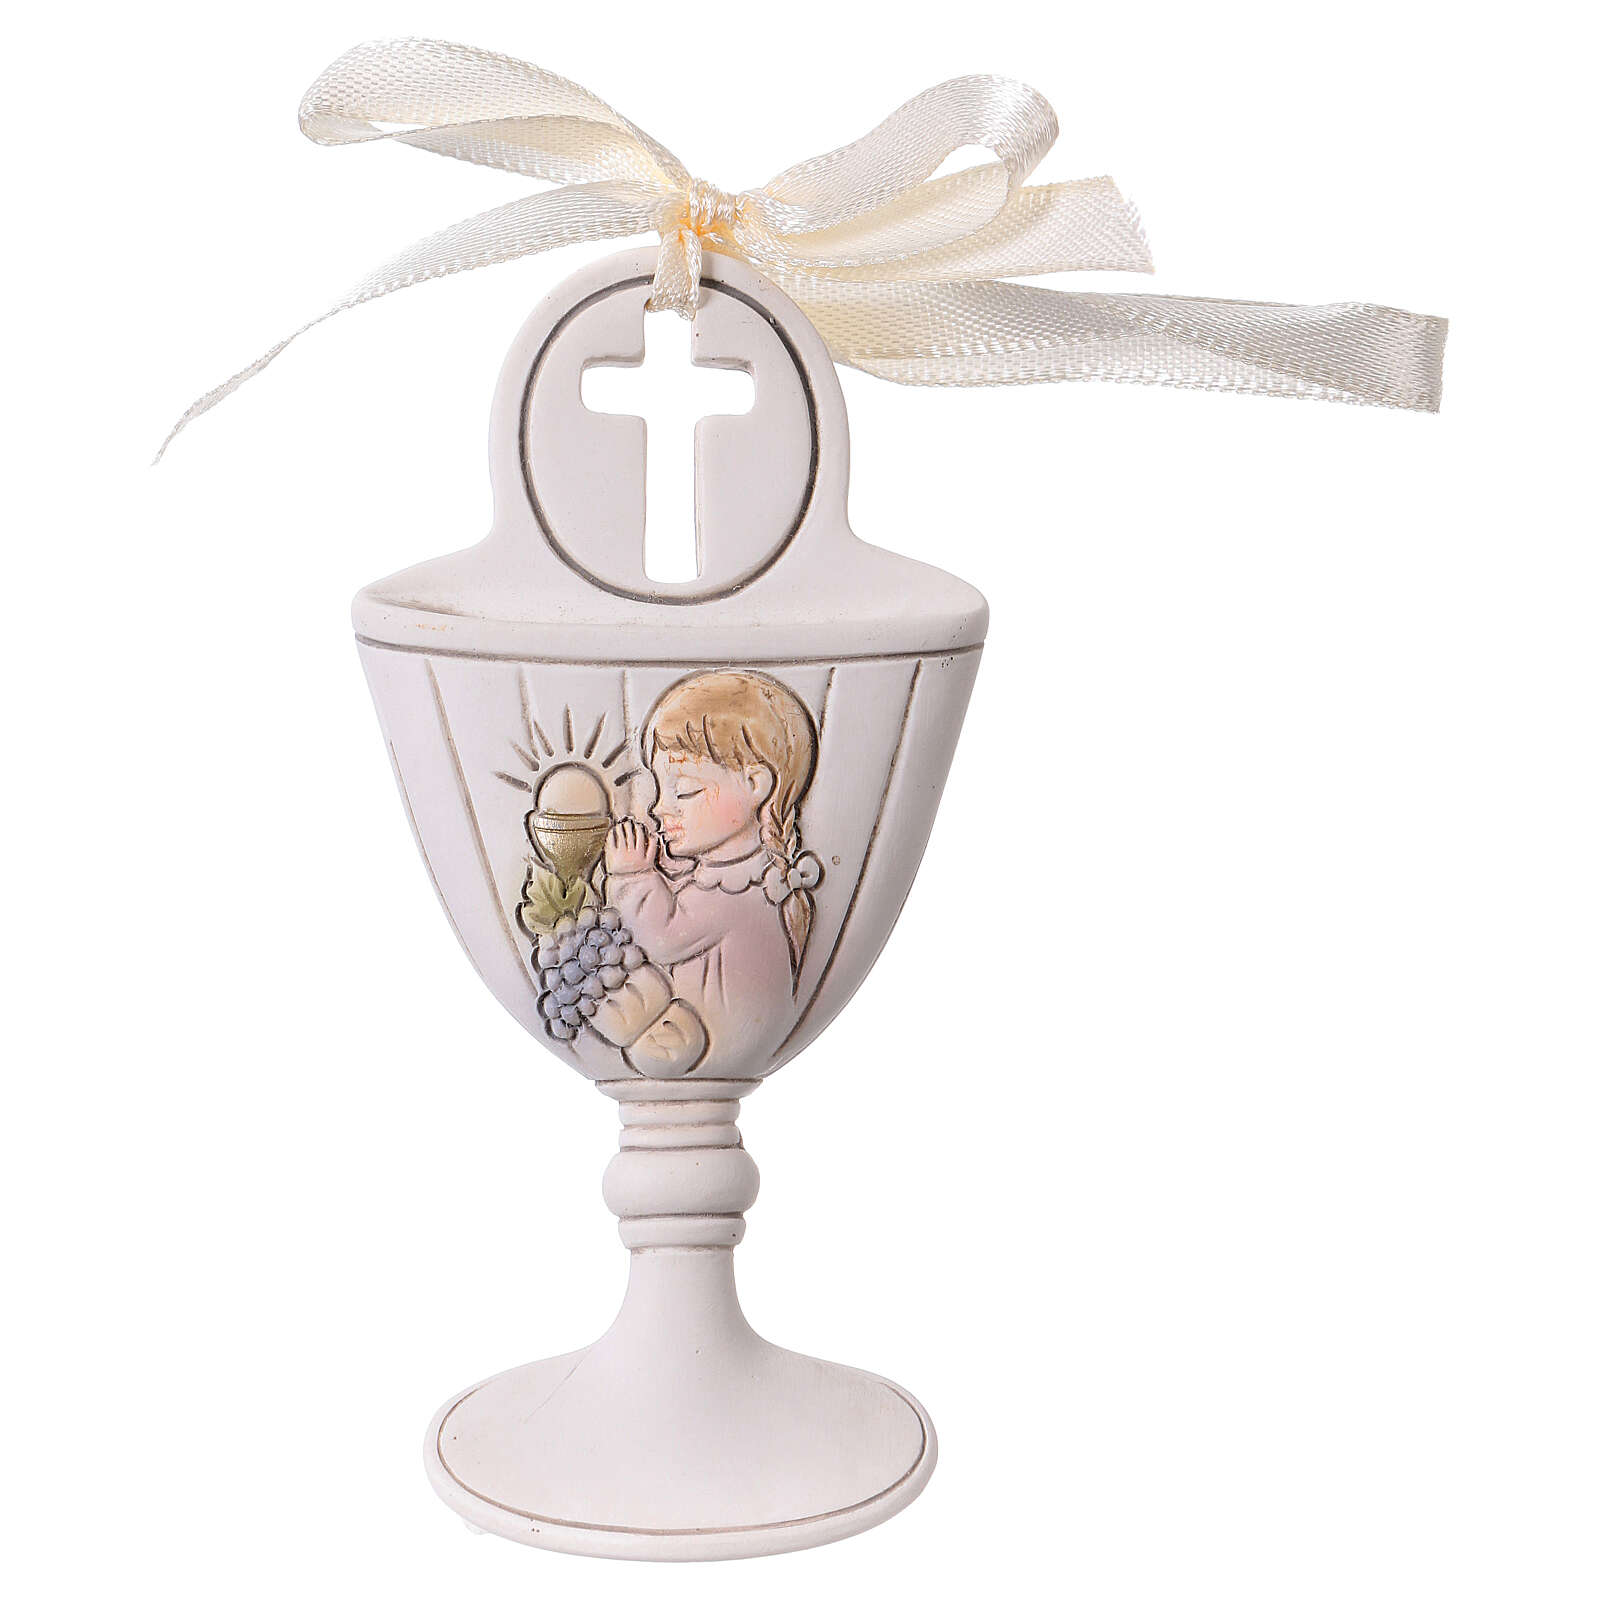 Chalice wall ornament with girl 3.5 in resin 3